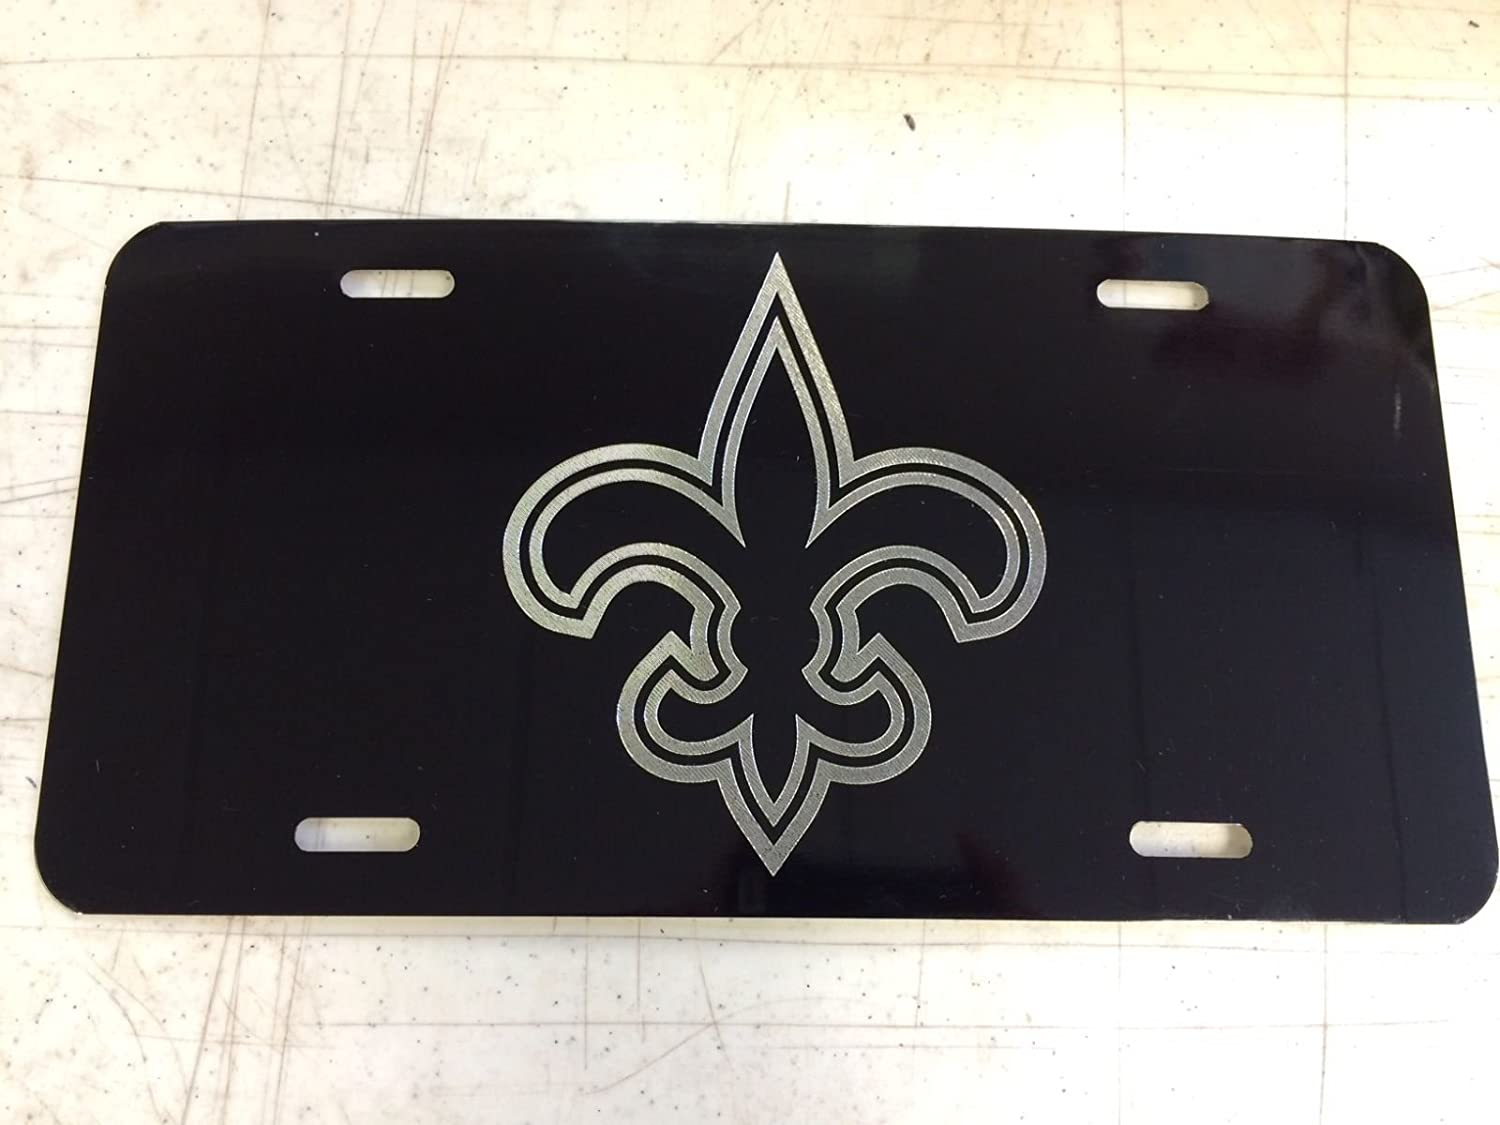 2448f09db45 Amazon.com  Hammett Holdings New Orleans Saints Car Tag Diamond Etched on  Aluminum License Plate  Automotive